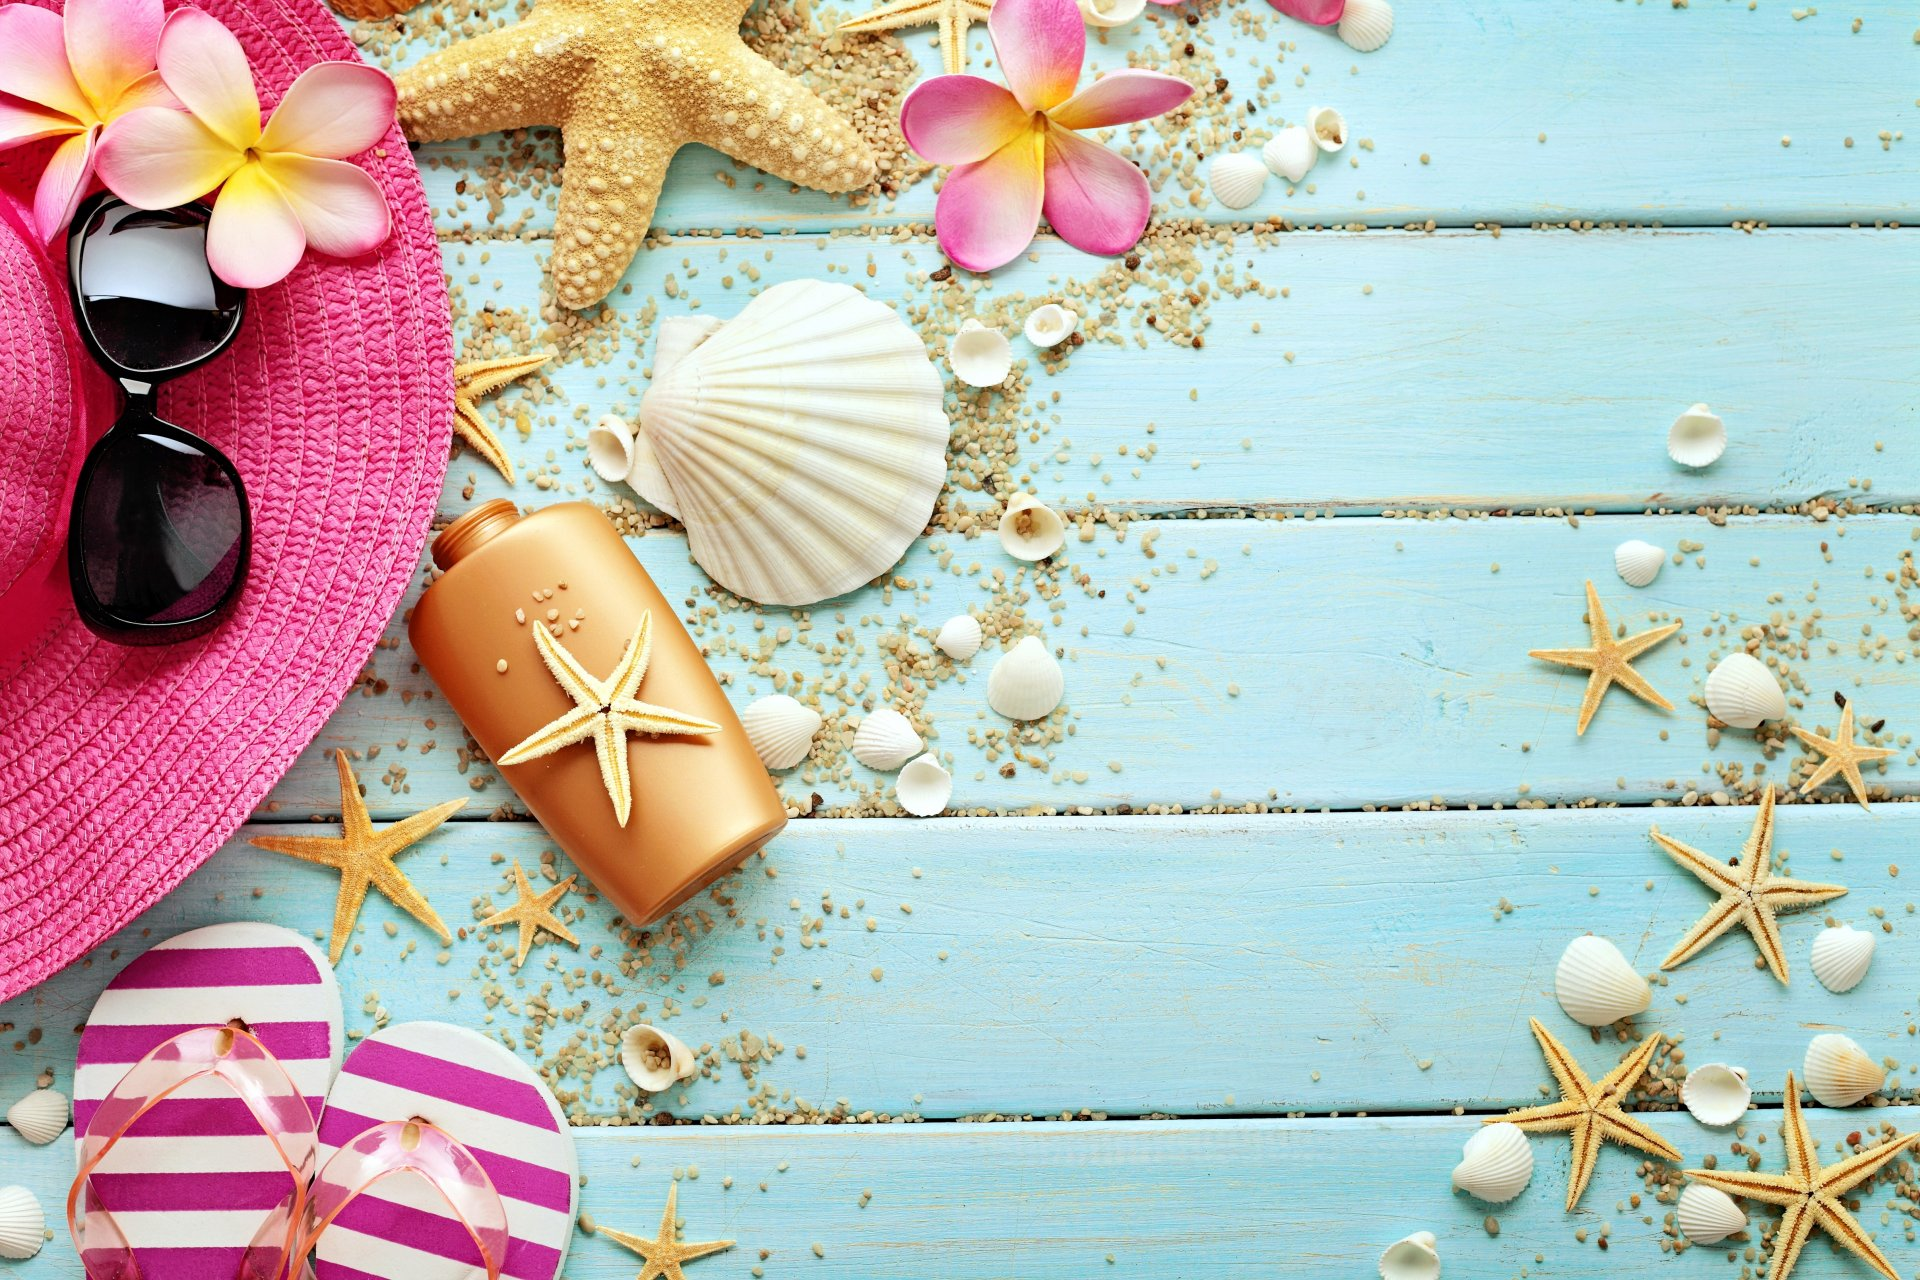 marine still life wood seashells starfish summer vacation accessories shells shale sunglasses hat flower